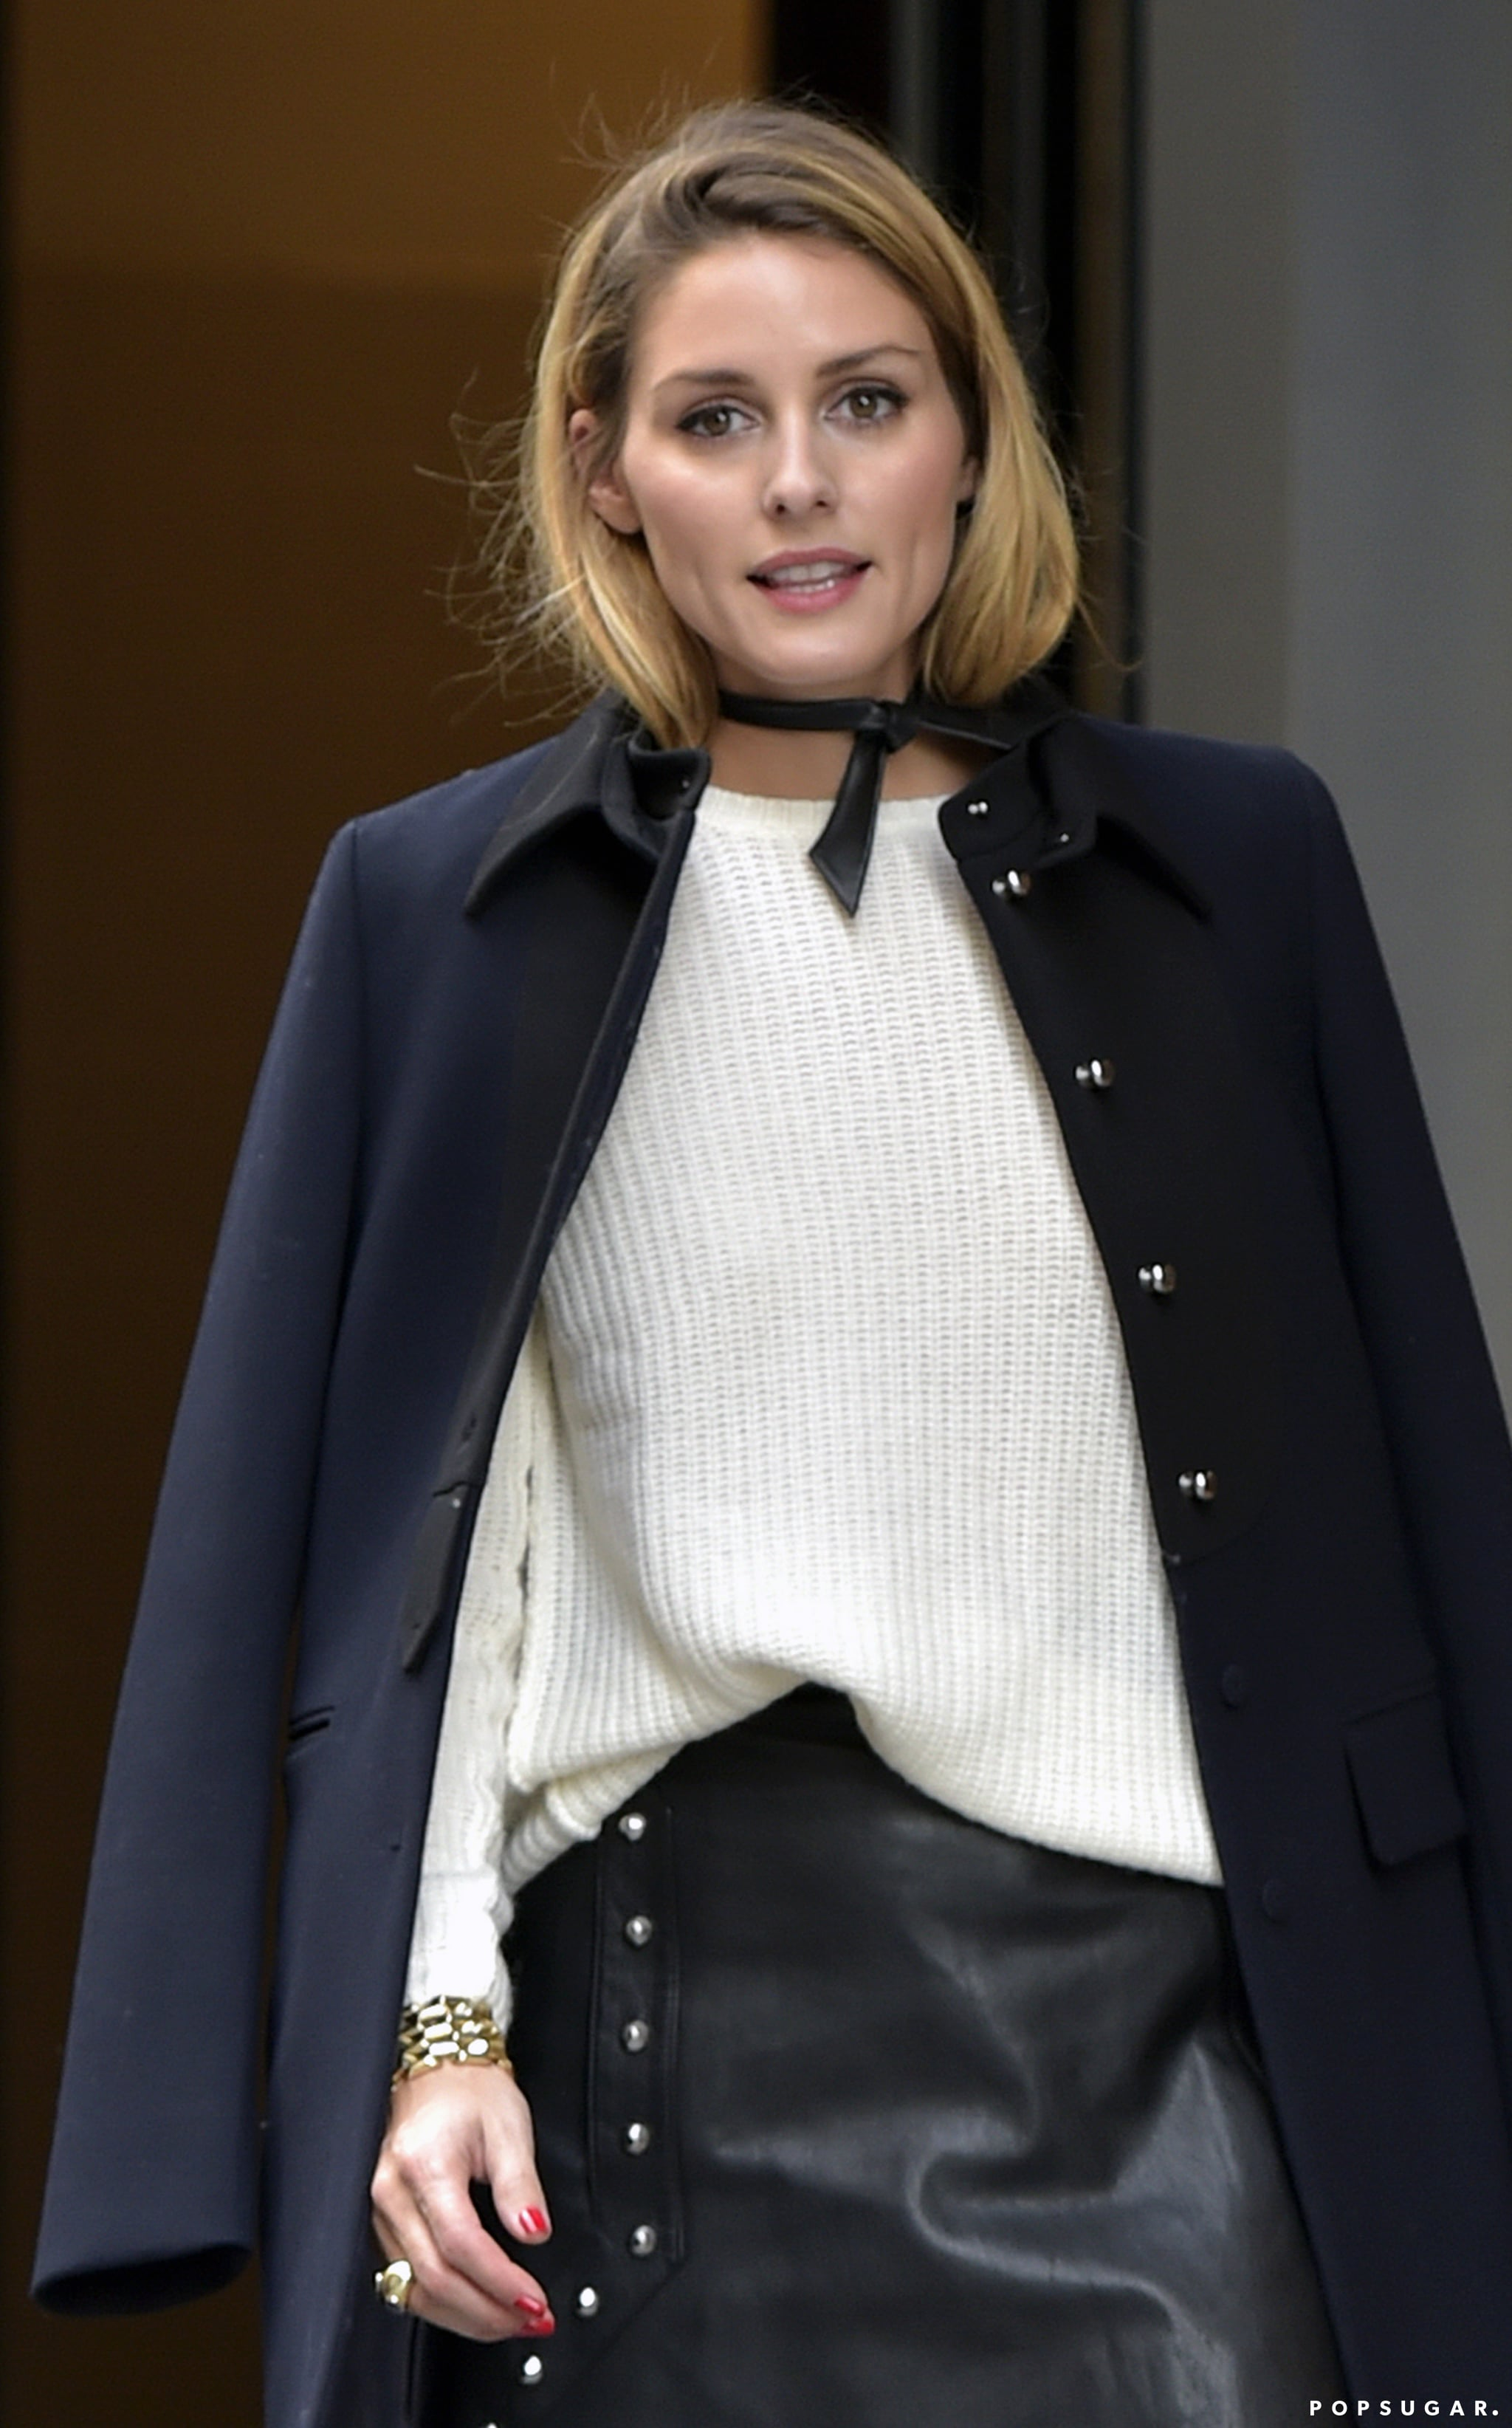 992840855ec Olivia Palermo's New Choker Sort of Looks Like a Neck Scarf | Olivia ...